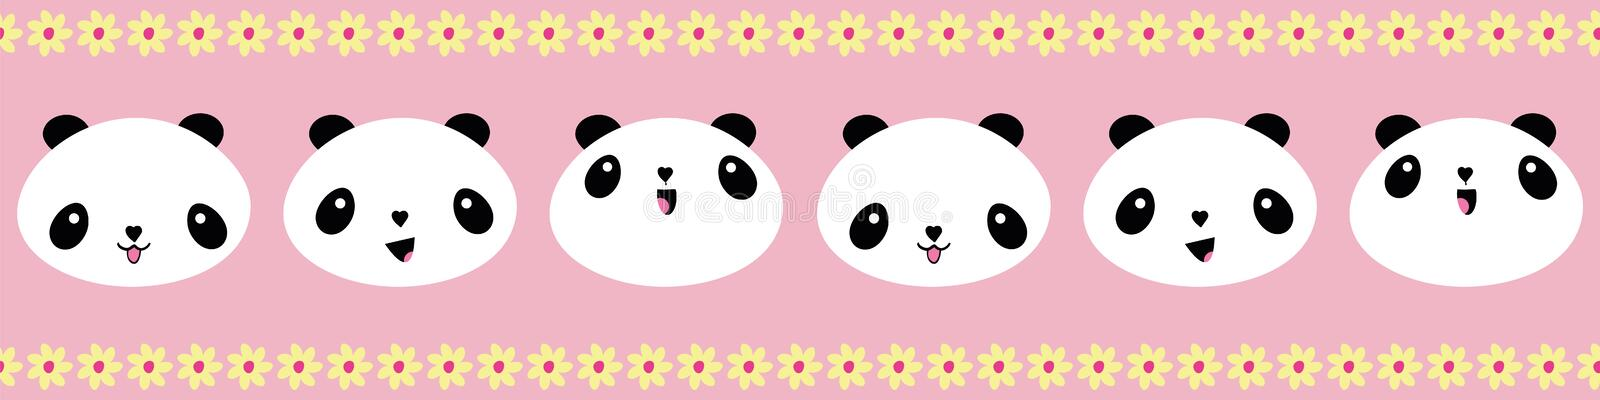 Cute Kawaii style happy pandas border with yellow flower edging. Seamless geometric vector pattern on pink background royalty free illustration